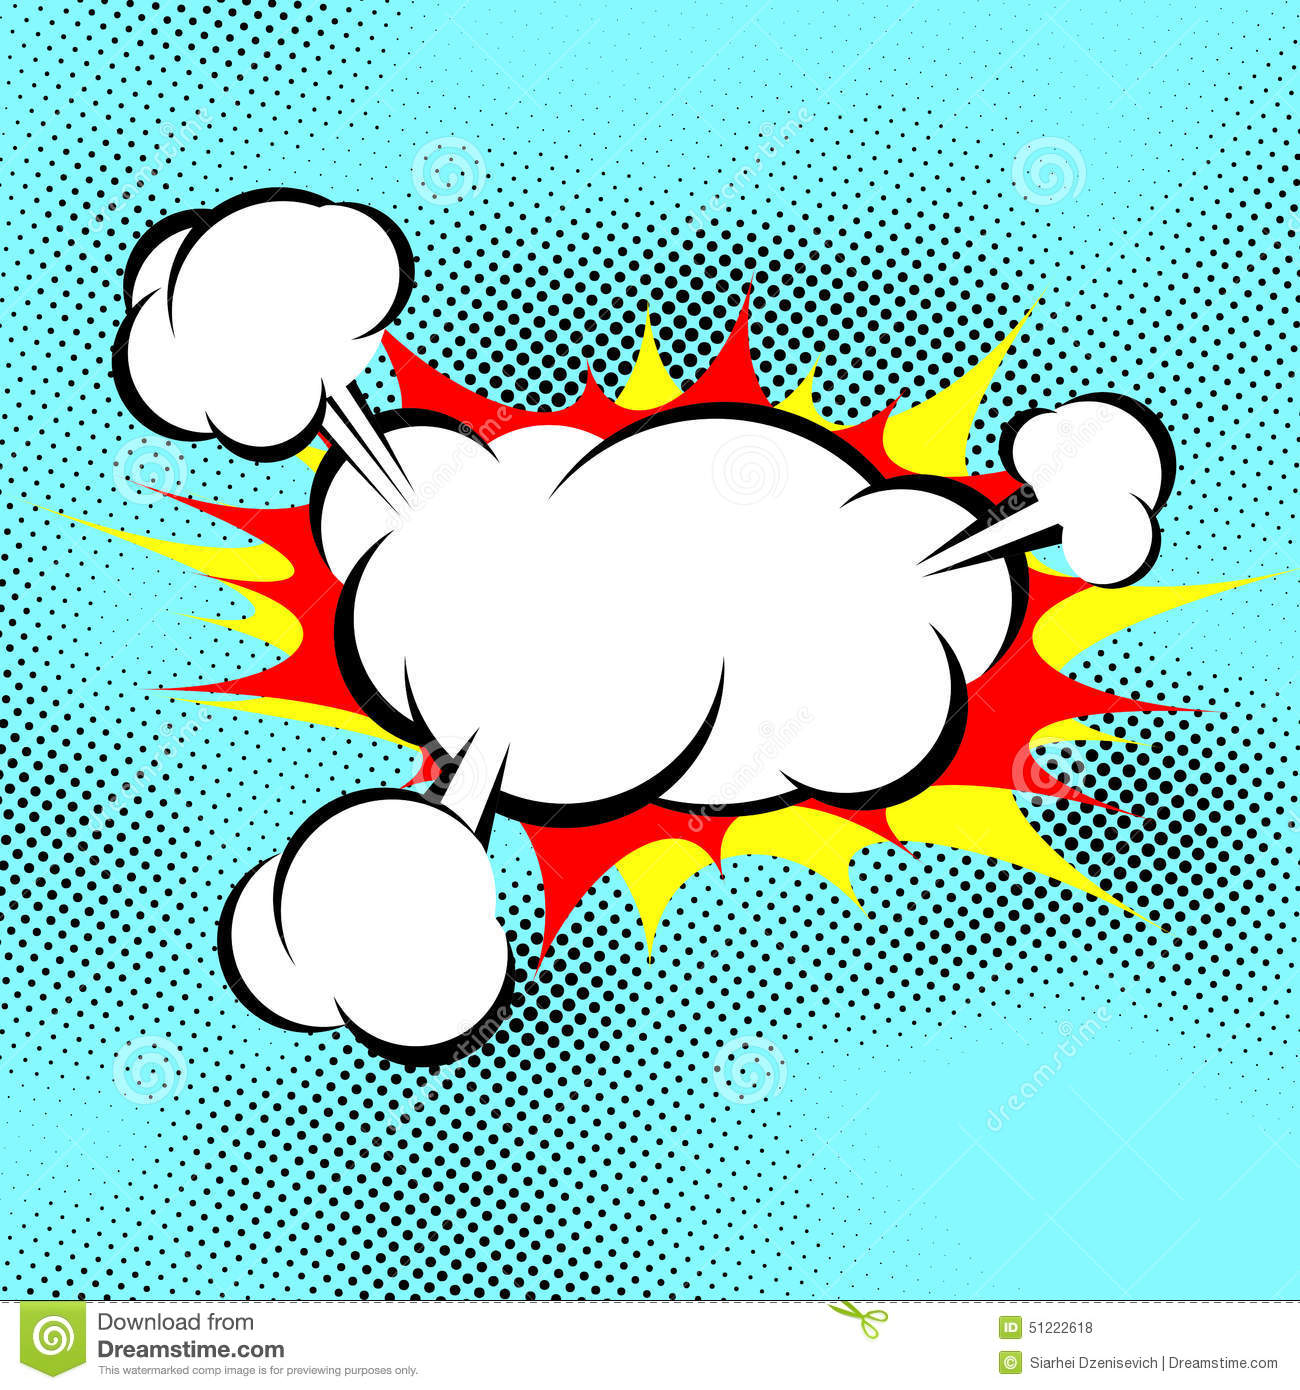 Calendar Maker Art Explosion : Pop art explosion boom cloud comic book background stock